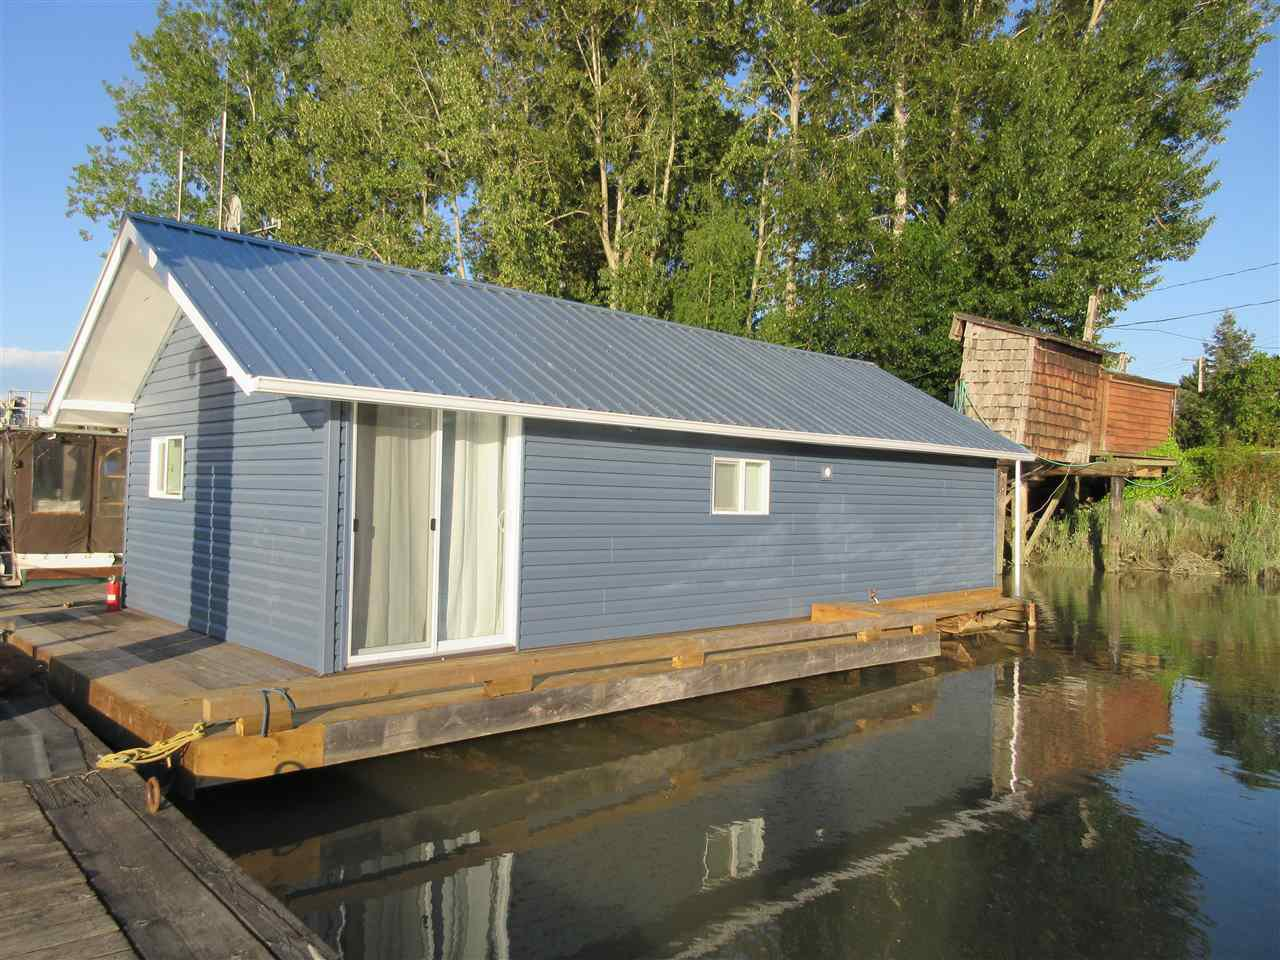 "Main Photo: 1 4671 W RIVER Road in Ladner: Port Guichon House for sale in ""FOUR SEAS MARINA"" : MLS®# R2371412"